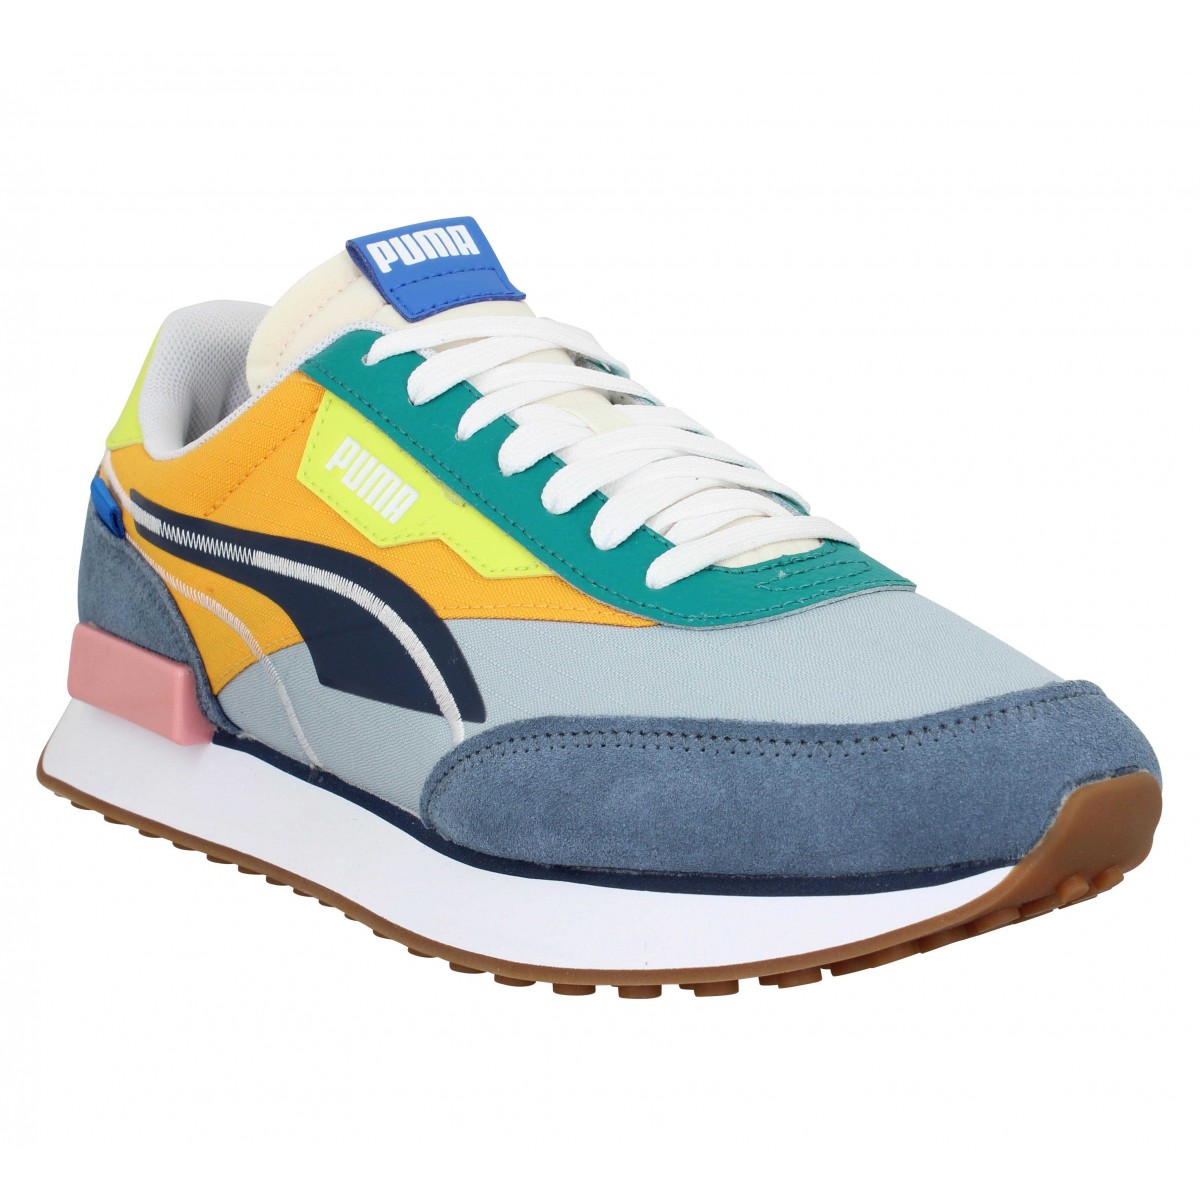 Puma Homme Future Rider Twofold Sd...